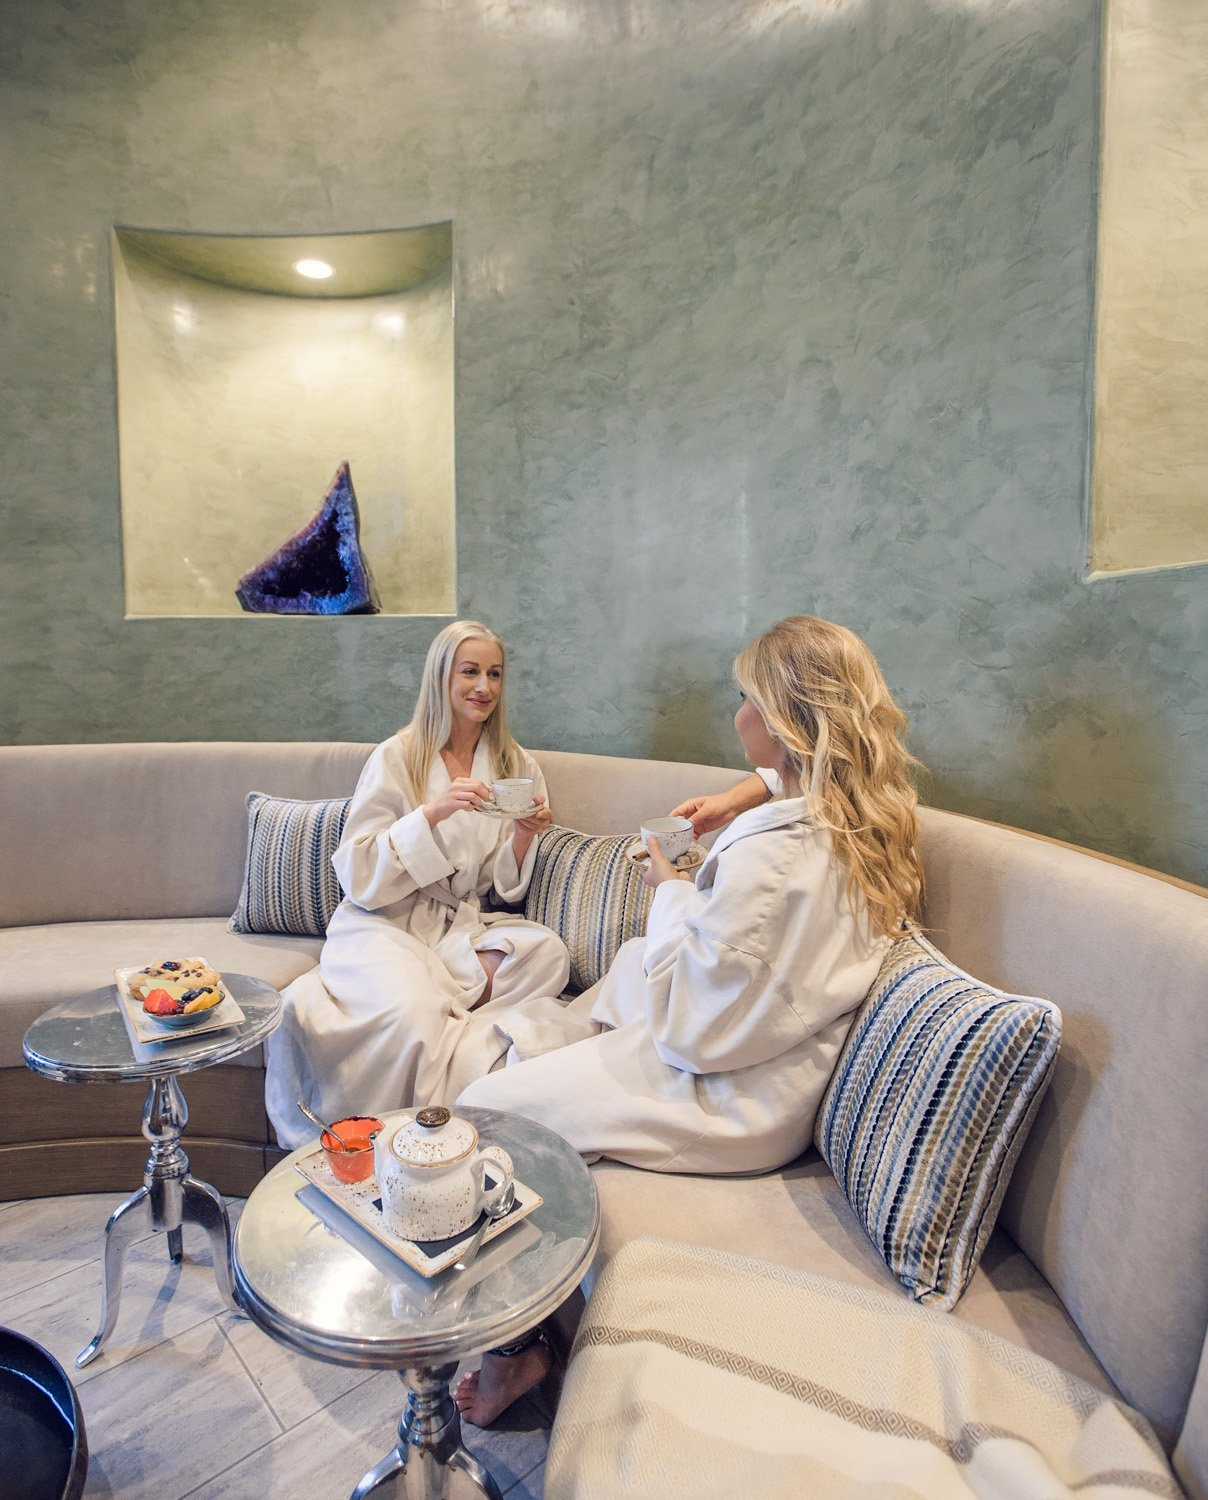 Two women lounging in their robes drinking tea